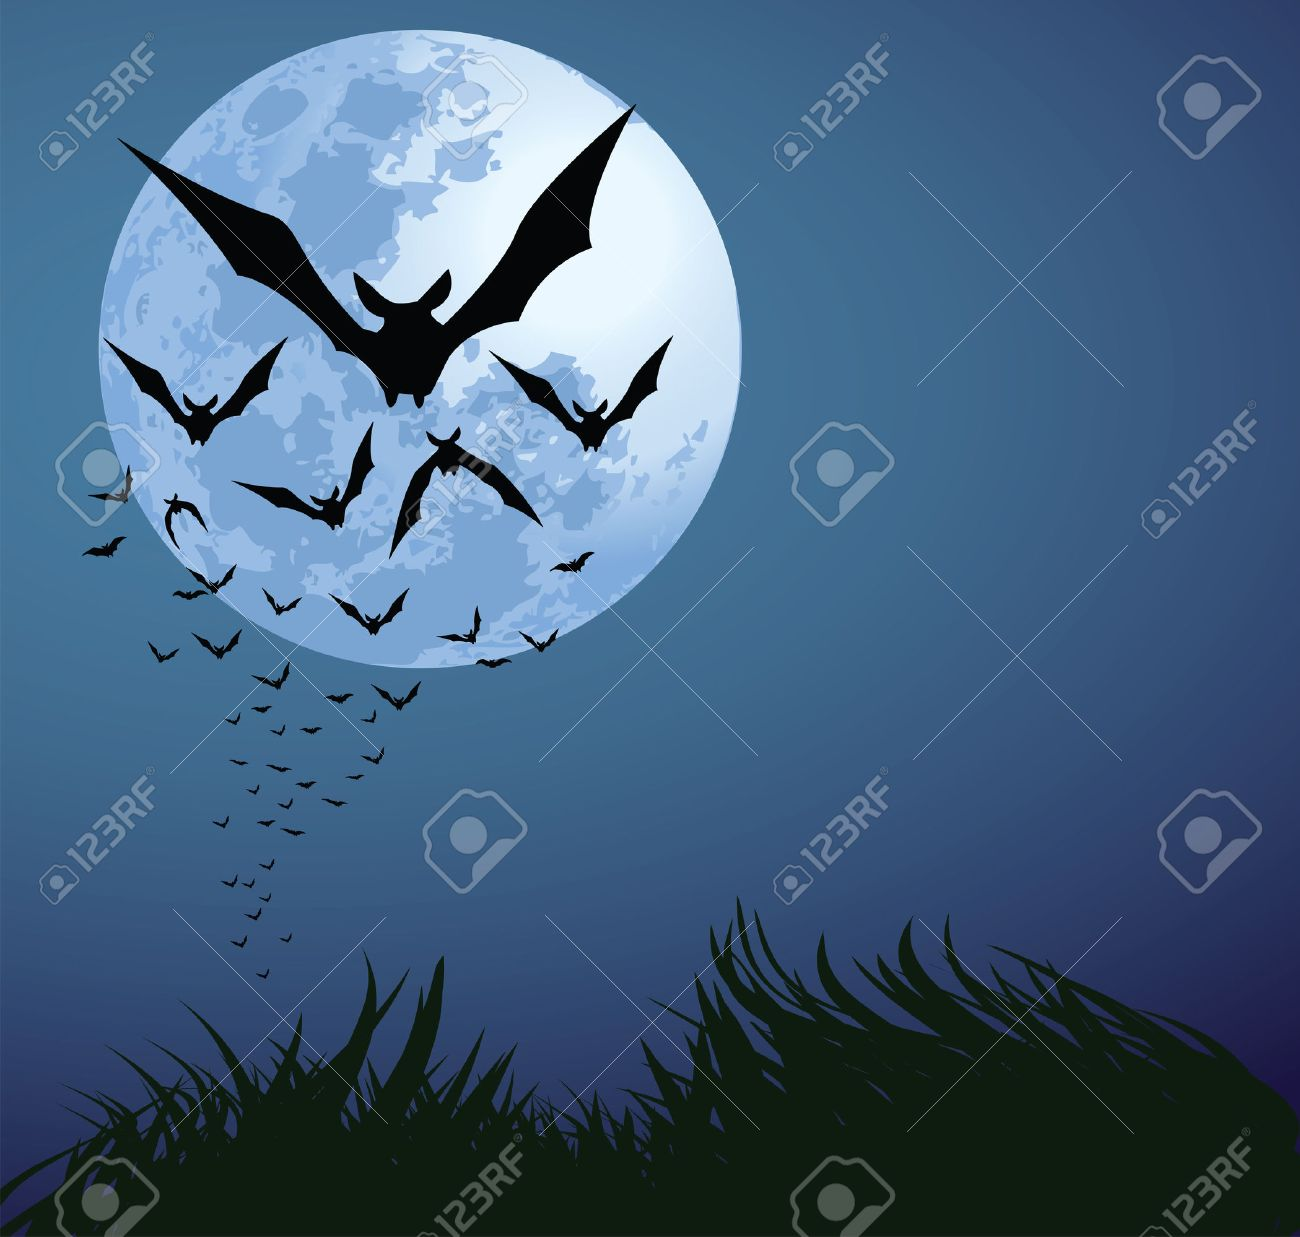 illustrations of halloween night with bats flying over blue moon Stock Vector - 7725230